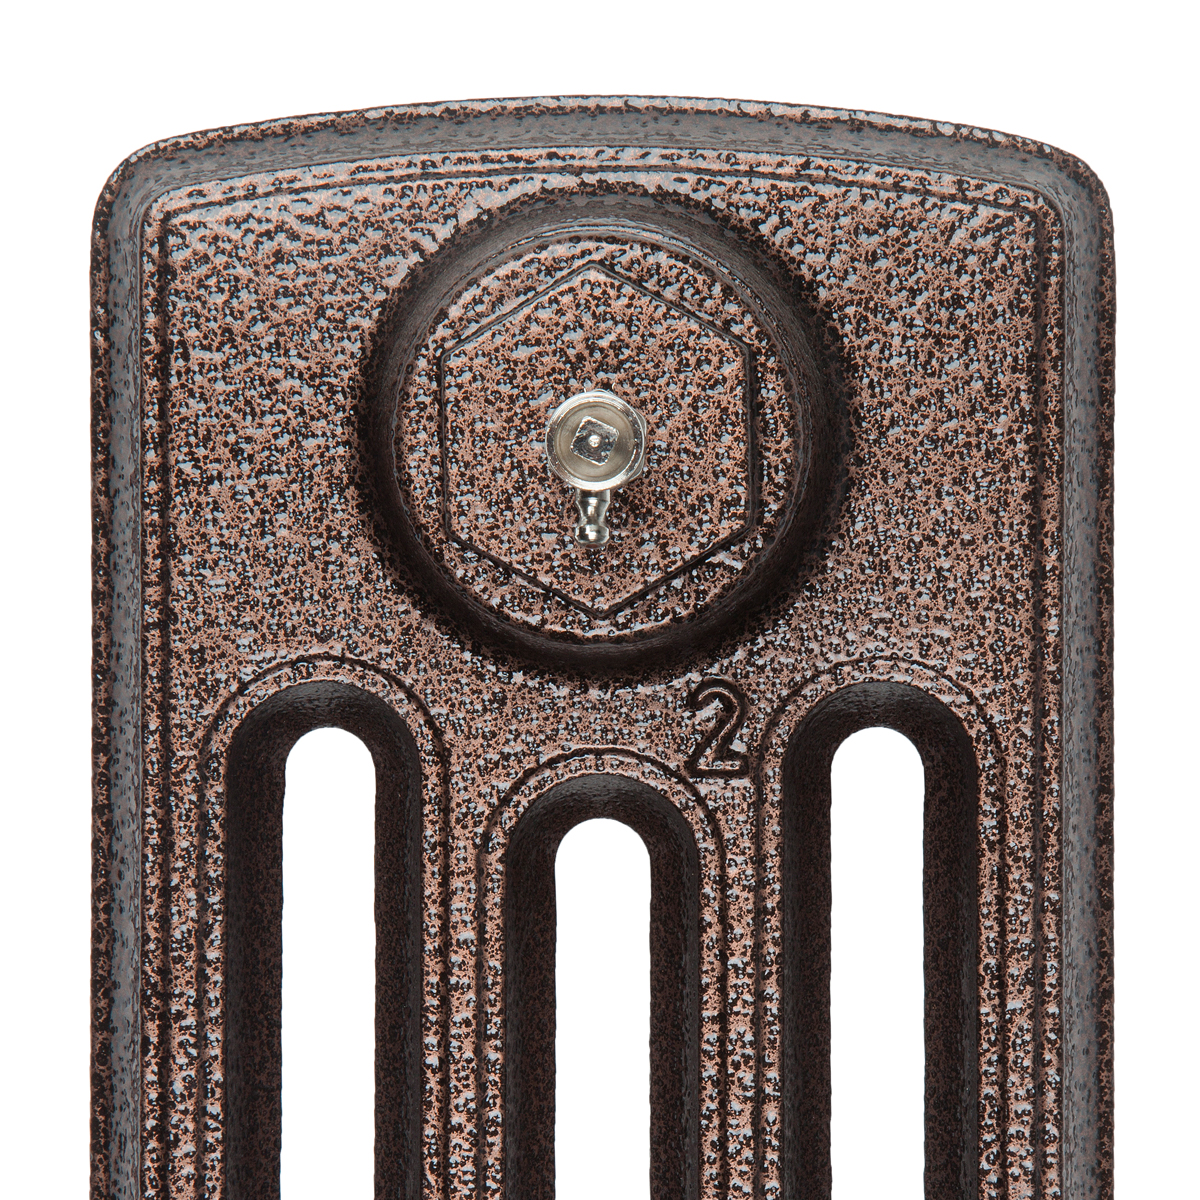 Bespoke Cast Iron Radiator Finishes For Sale Period Home Style